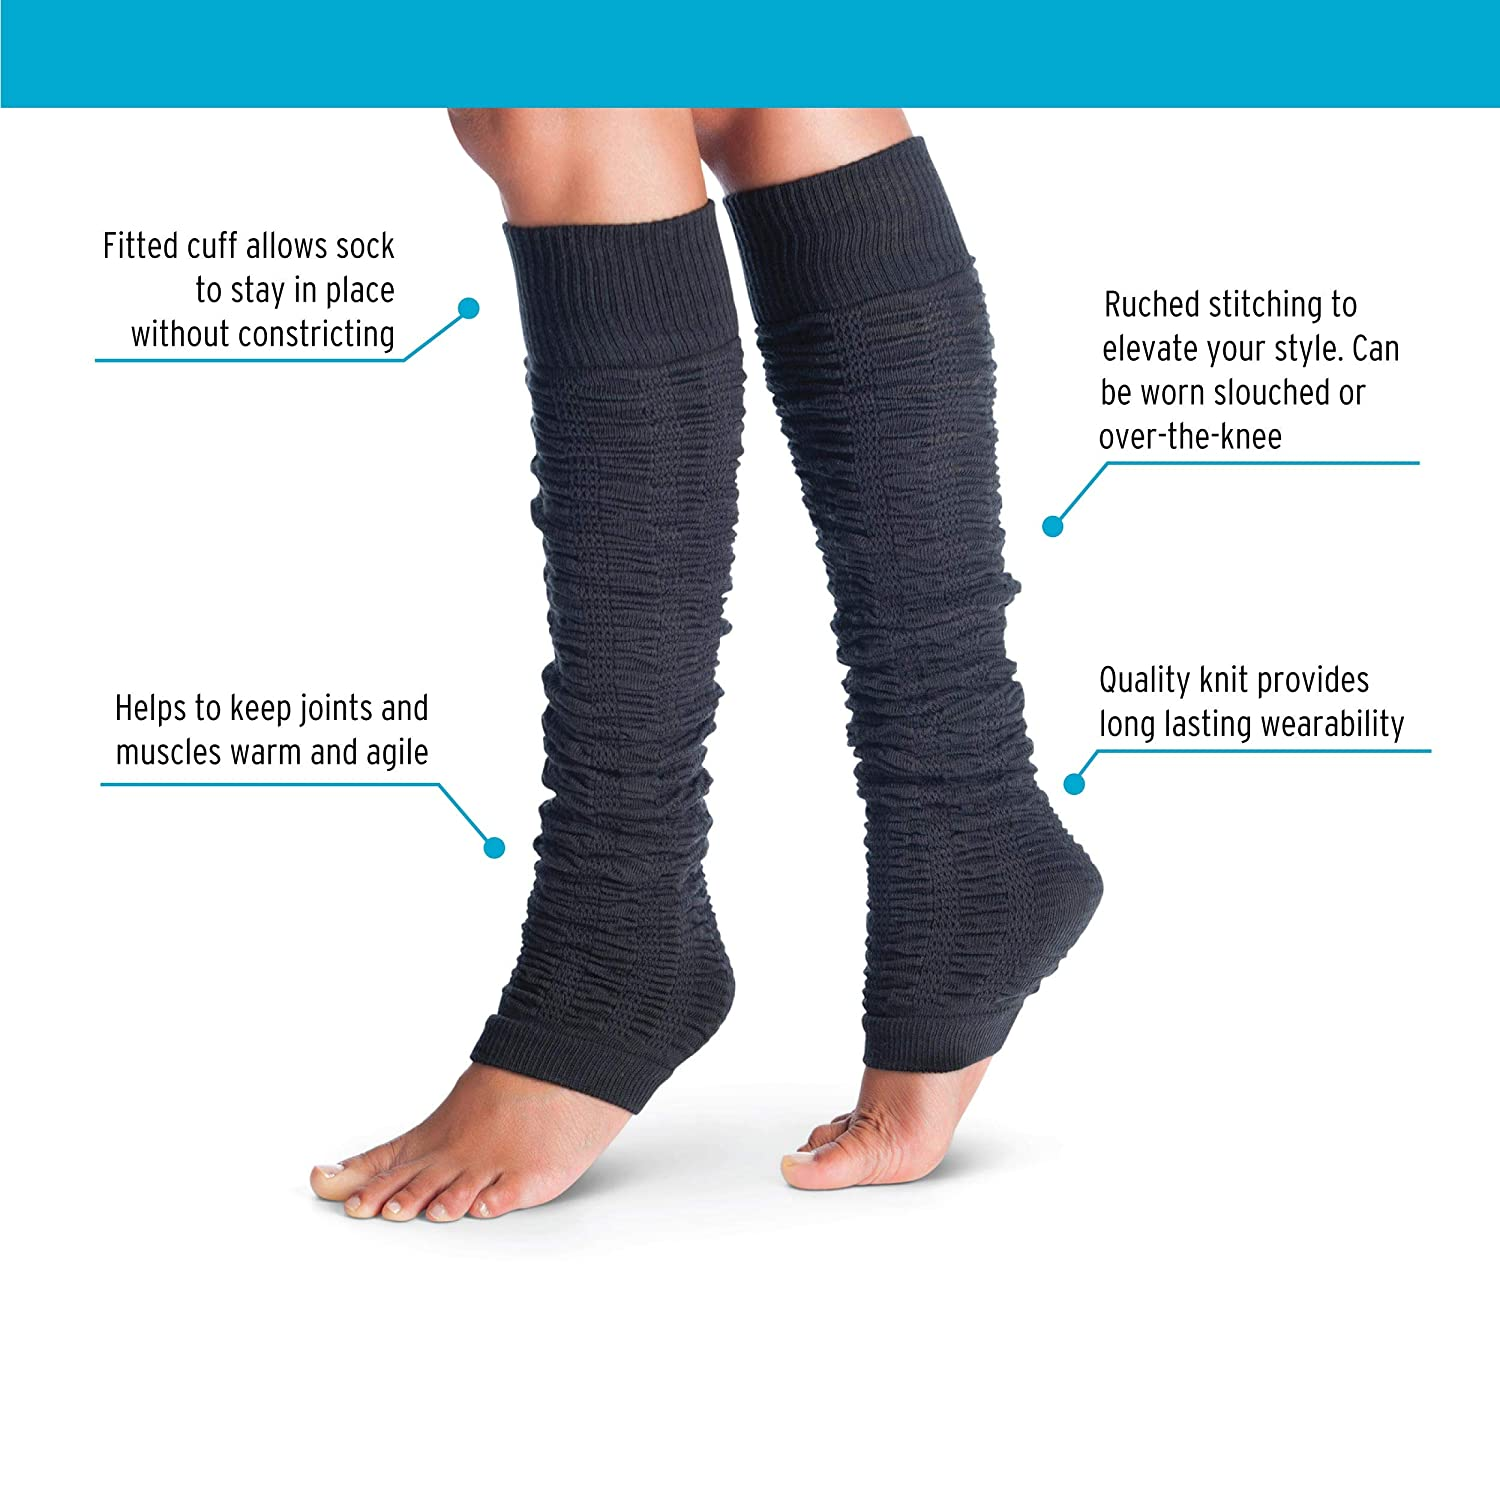 Amazon.com: tucketts calentadores de la pierna Calcetines ...